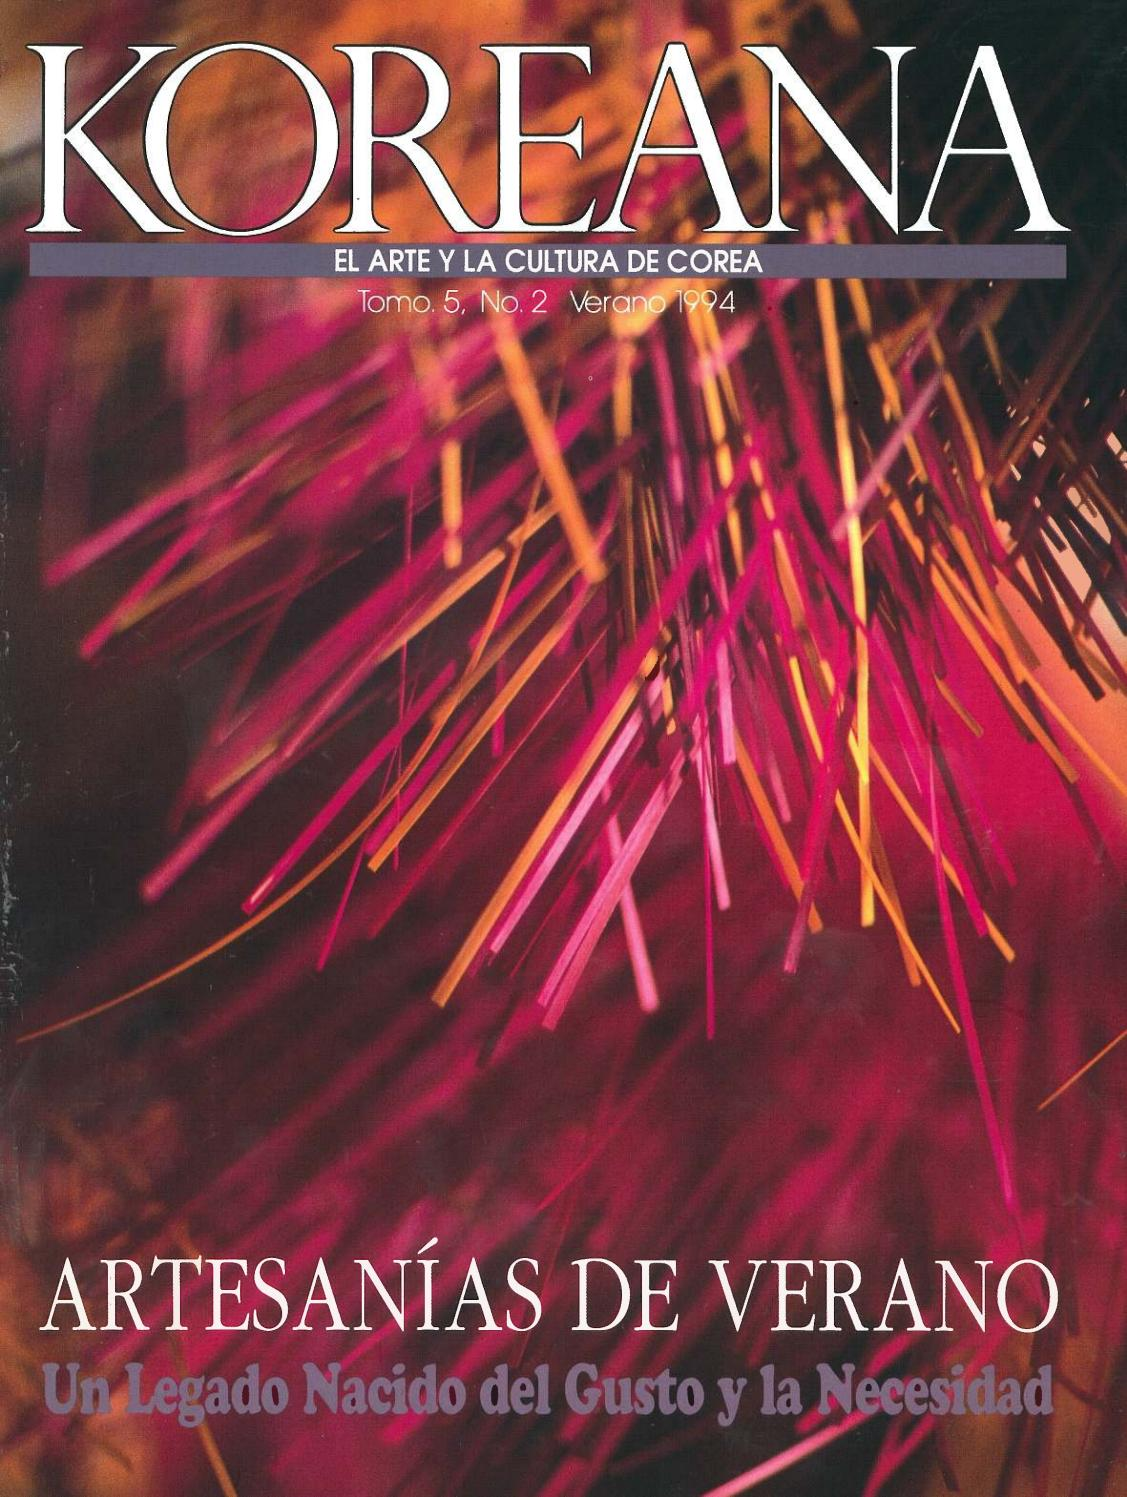 Koreana Summer 1994 (Spanish) by The Korea Foundation - issuu